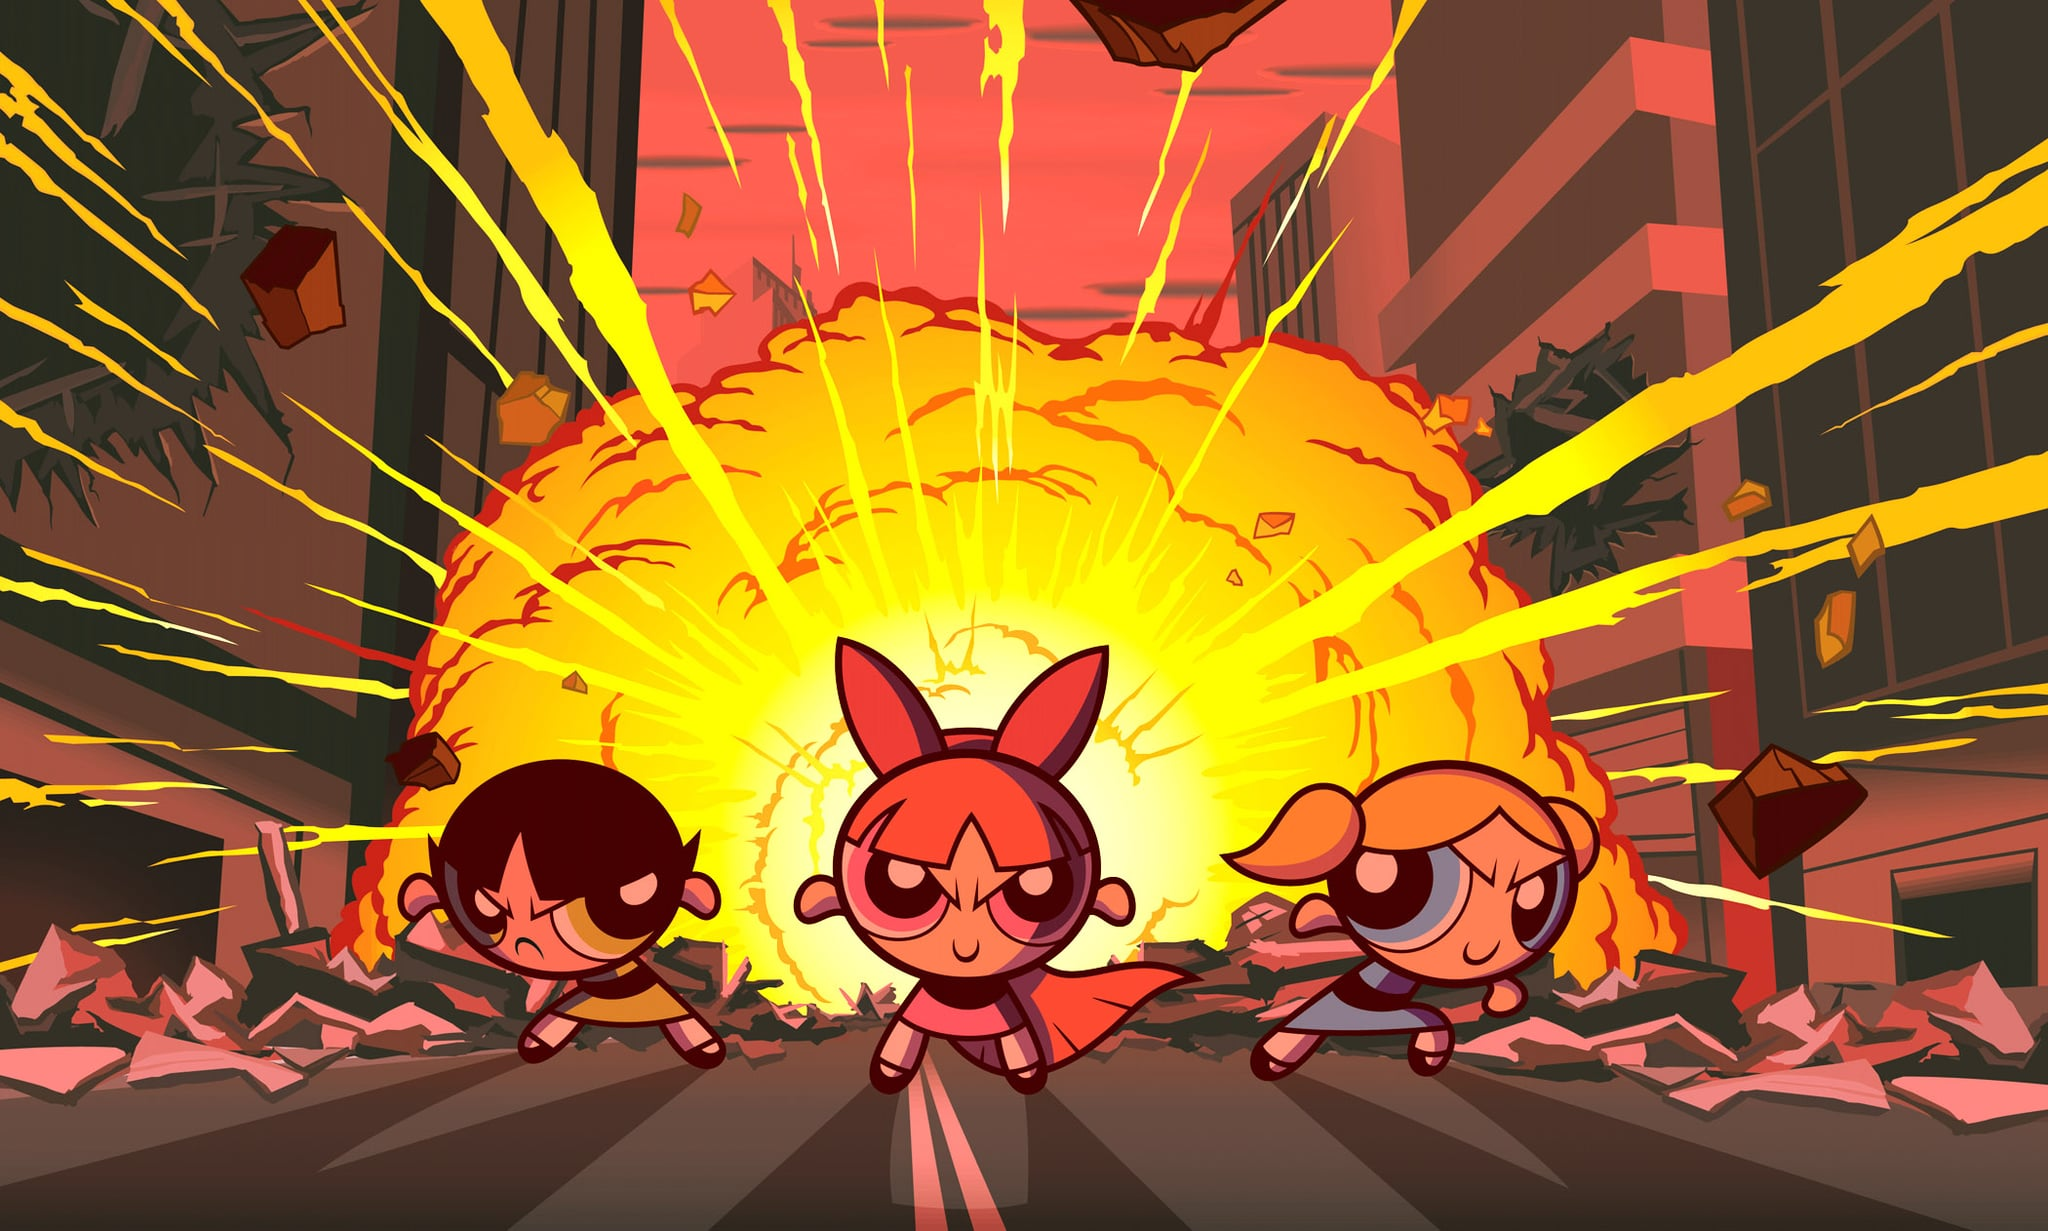 POWERPUFF GIRLS, THE, Buttercup, Blossom, Bubbles, 2002 (c) Warner Brothers.  Courtesy Everett Collection.